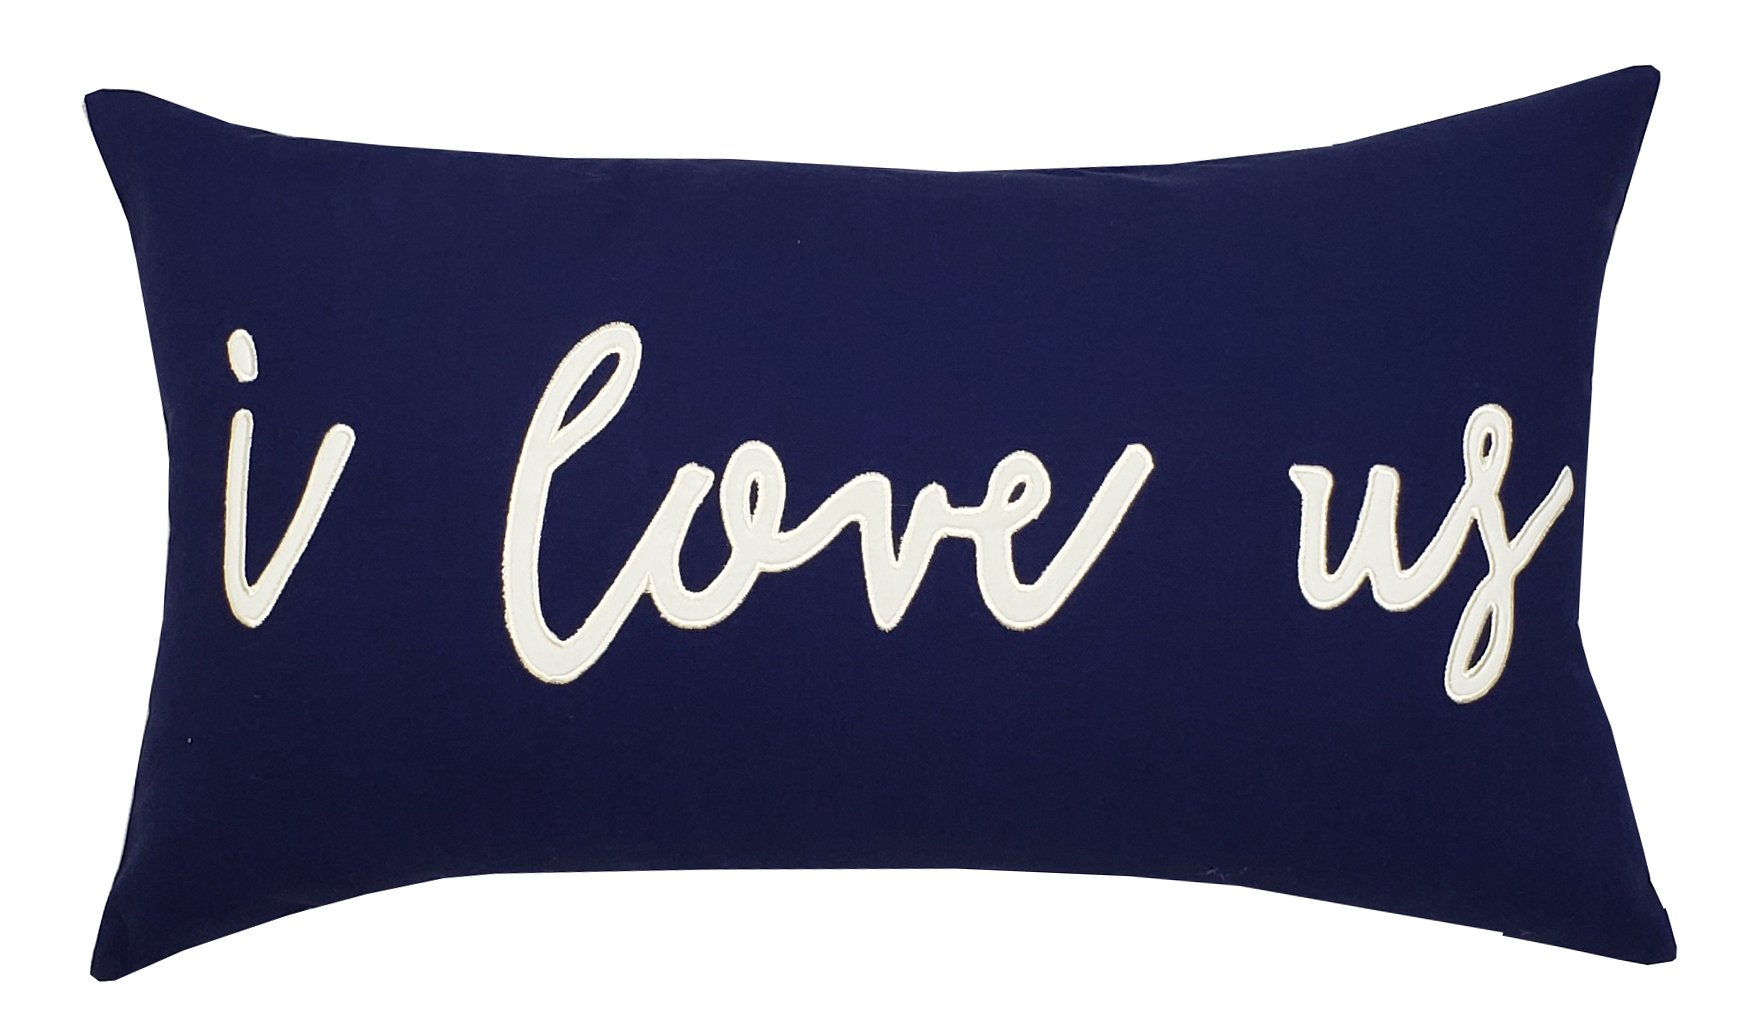 DecorHouzz I love us Appliqued Decorative Cushion Cover Pillow Cases Cover Standard Throw Pillow Case Couple Wedding Love Gift 14''x24'' (14x24, Navy) by EURASIA DECOR (Image #1)